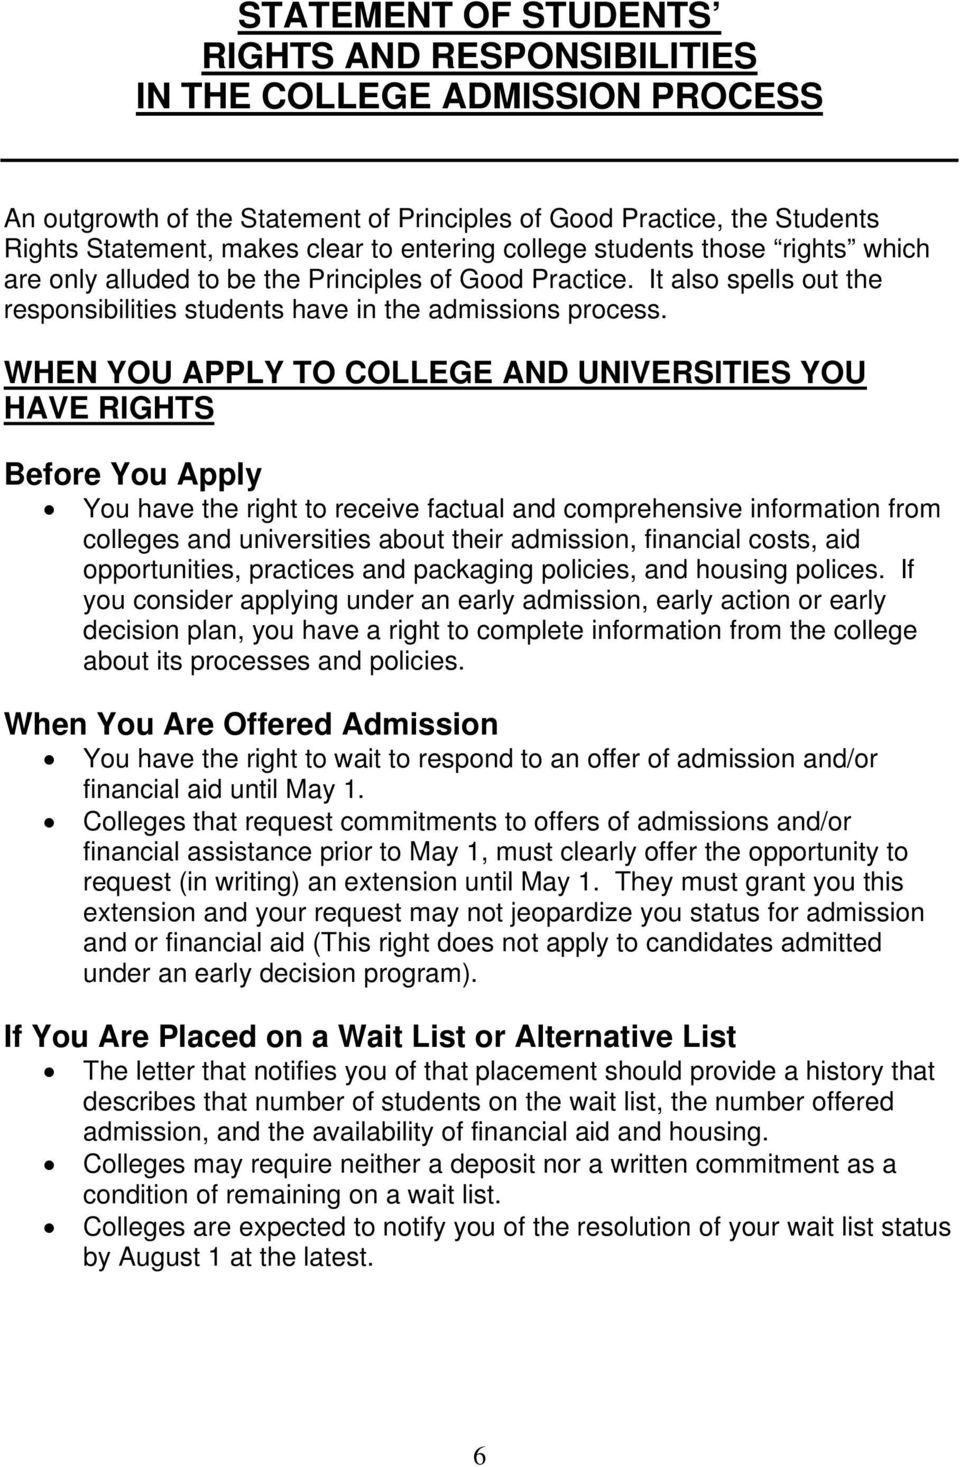 WHEN YOU APPLY TO COLLEGE AND UNIVERSITIES YOU HAVE RIGHTS Before You Apply You have the right to receive factual and comprehensive information from colleges and universities about their admission,